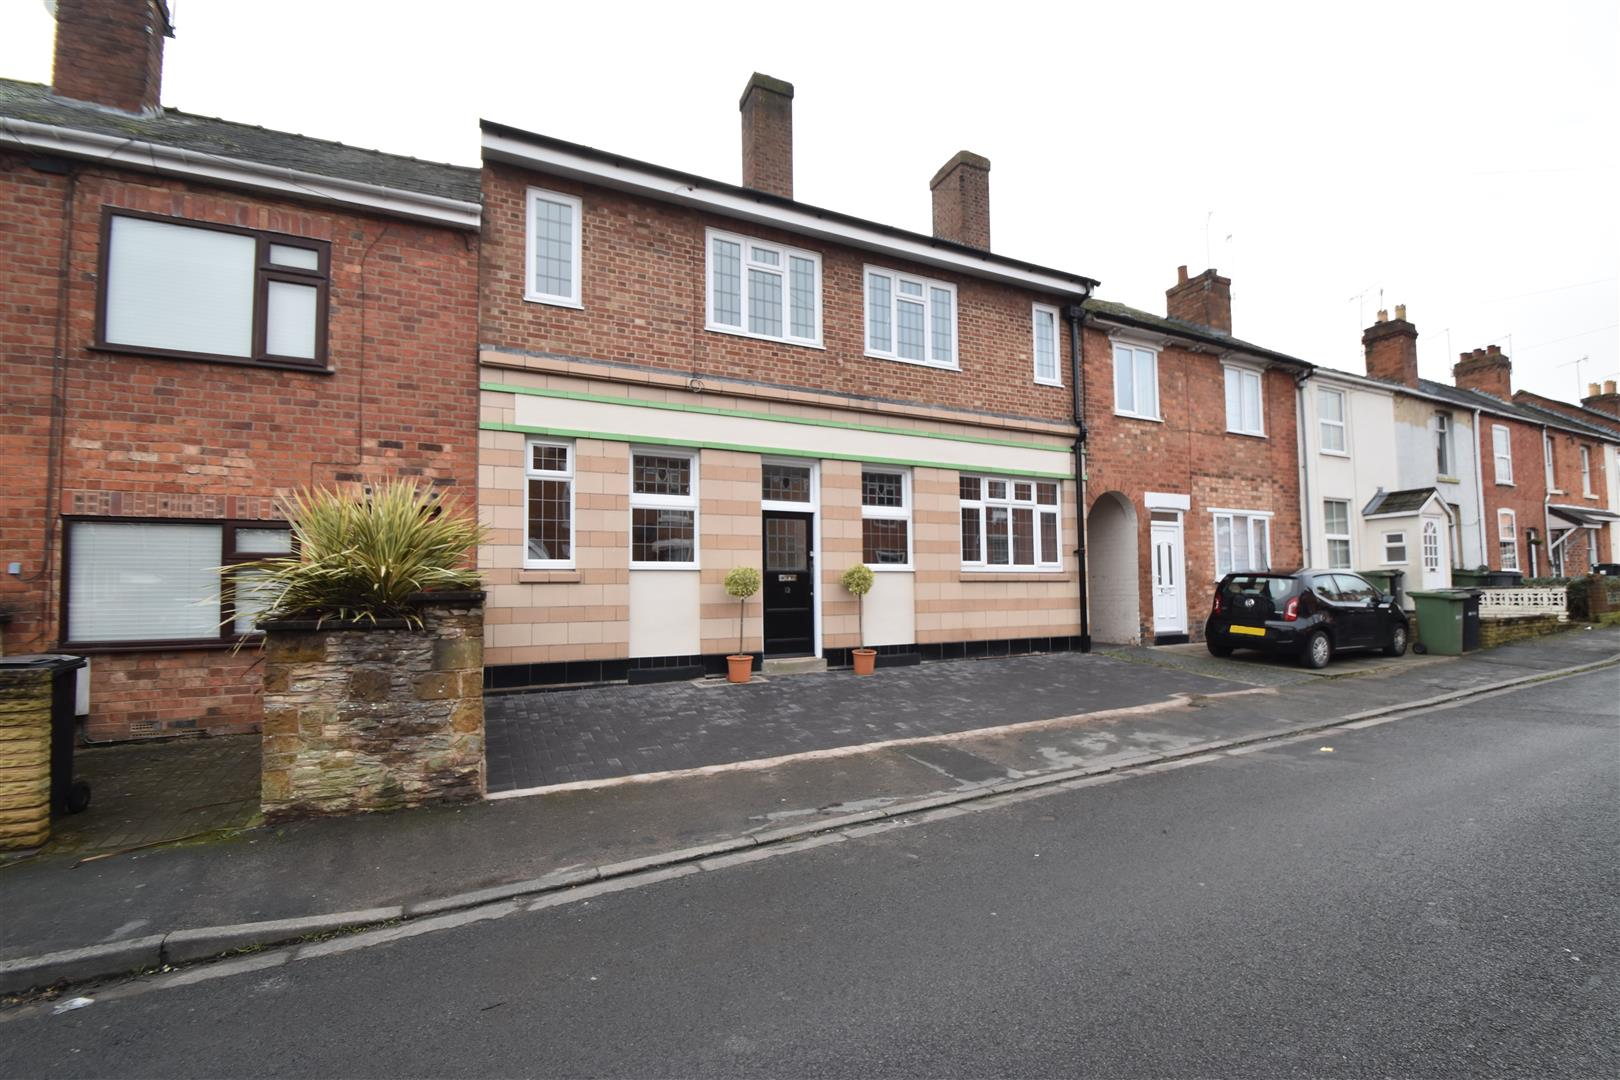 4 Bedrooms Terraced House for sale in Pitmaston Road, Worcester